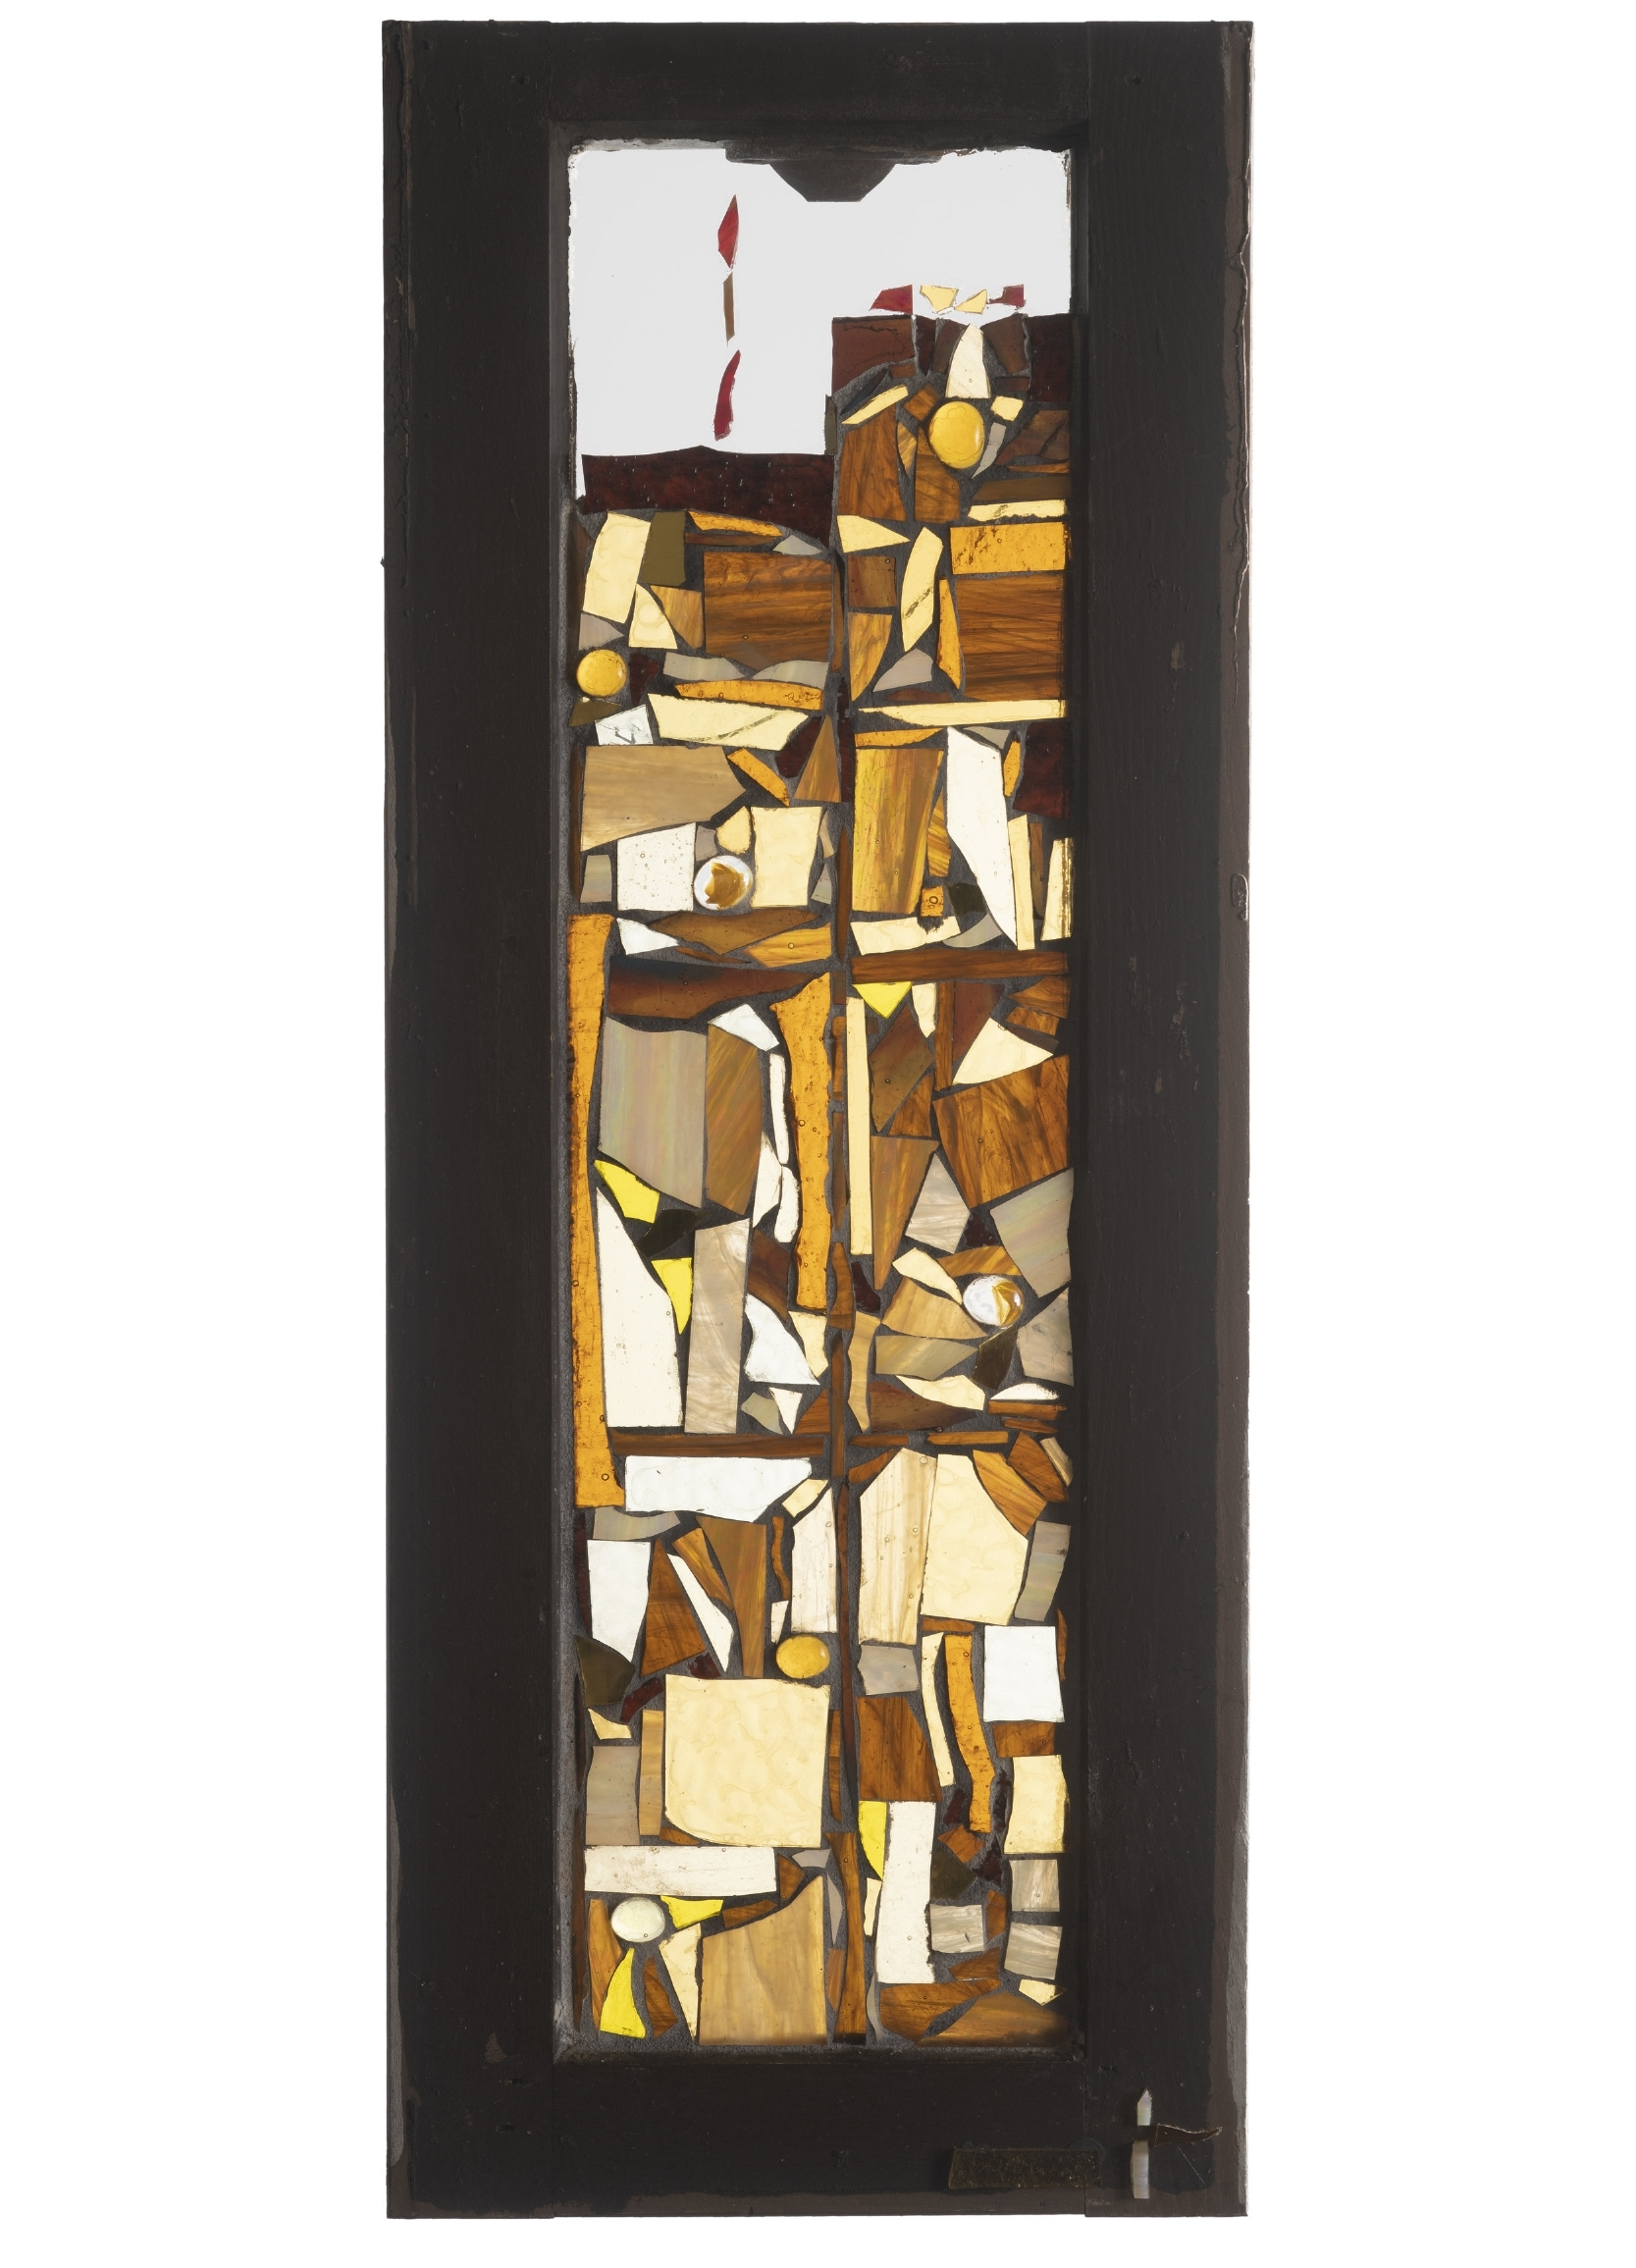 The Twins, 2001. Glass, 28 x 10 in.   Window from West 24th St., New York, NY